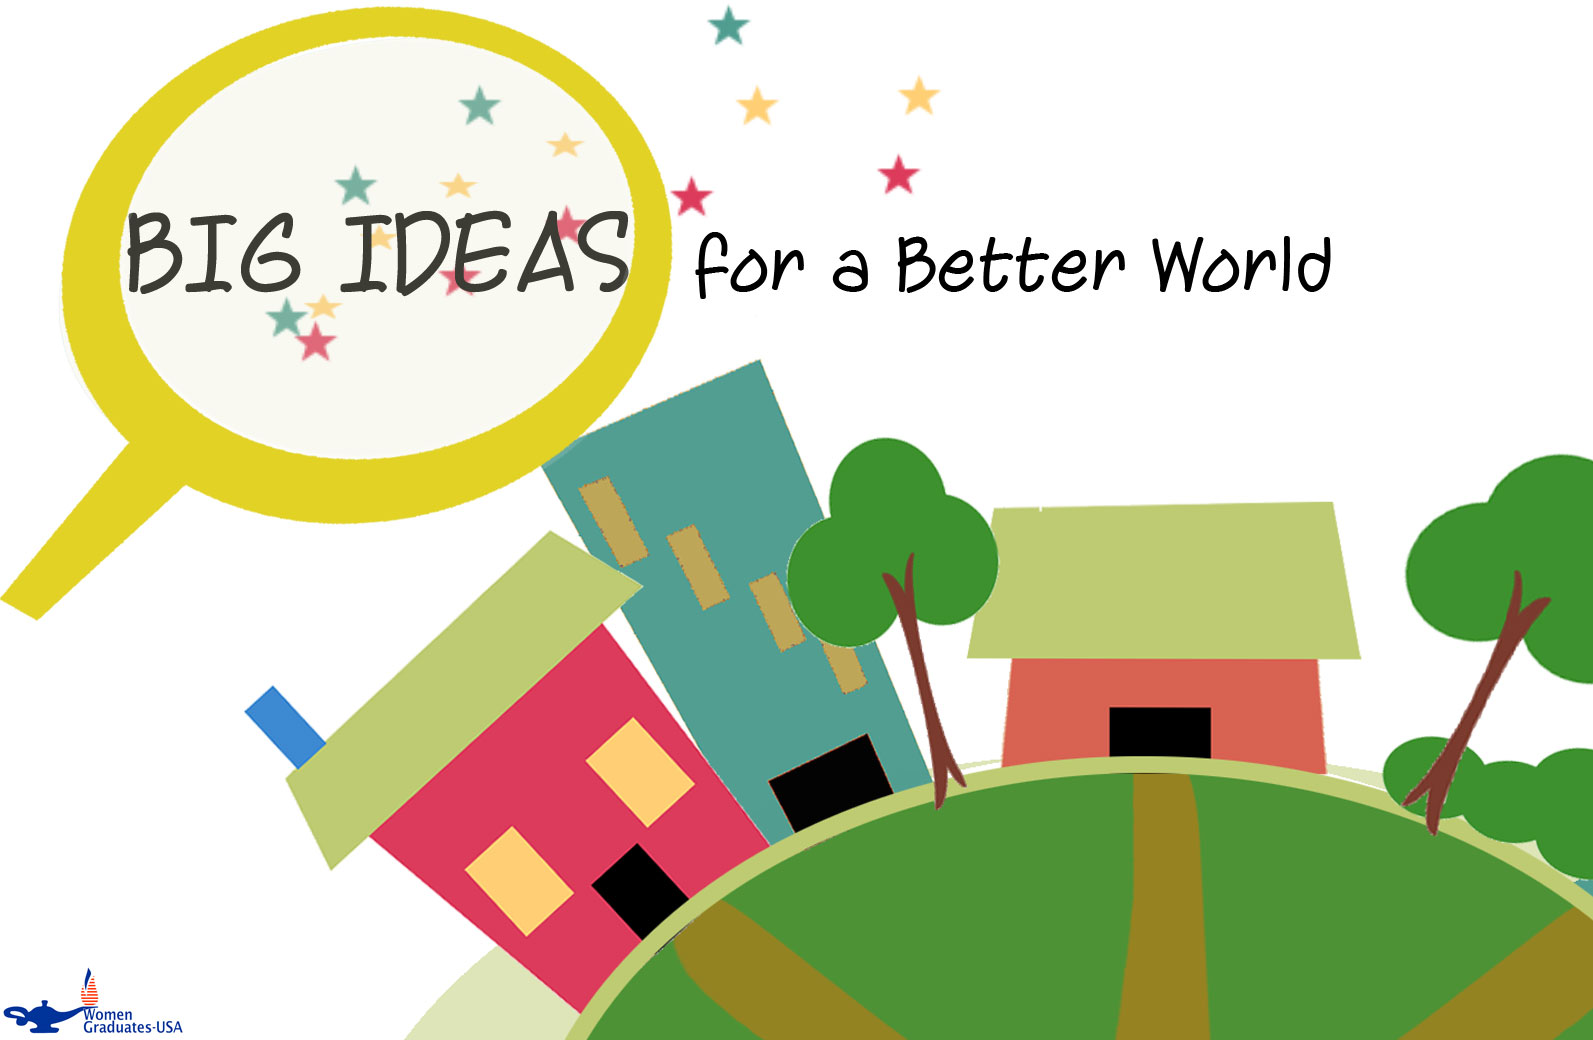 Big Ideas for a Better World